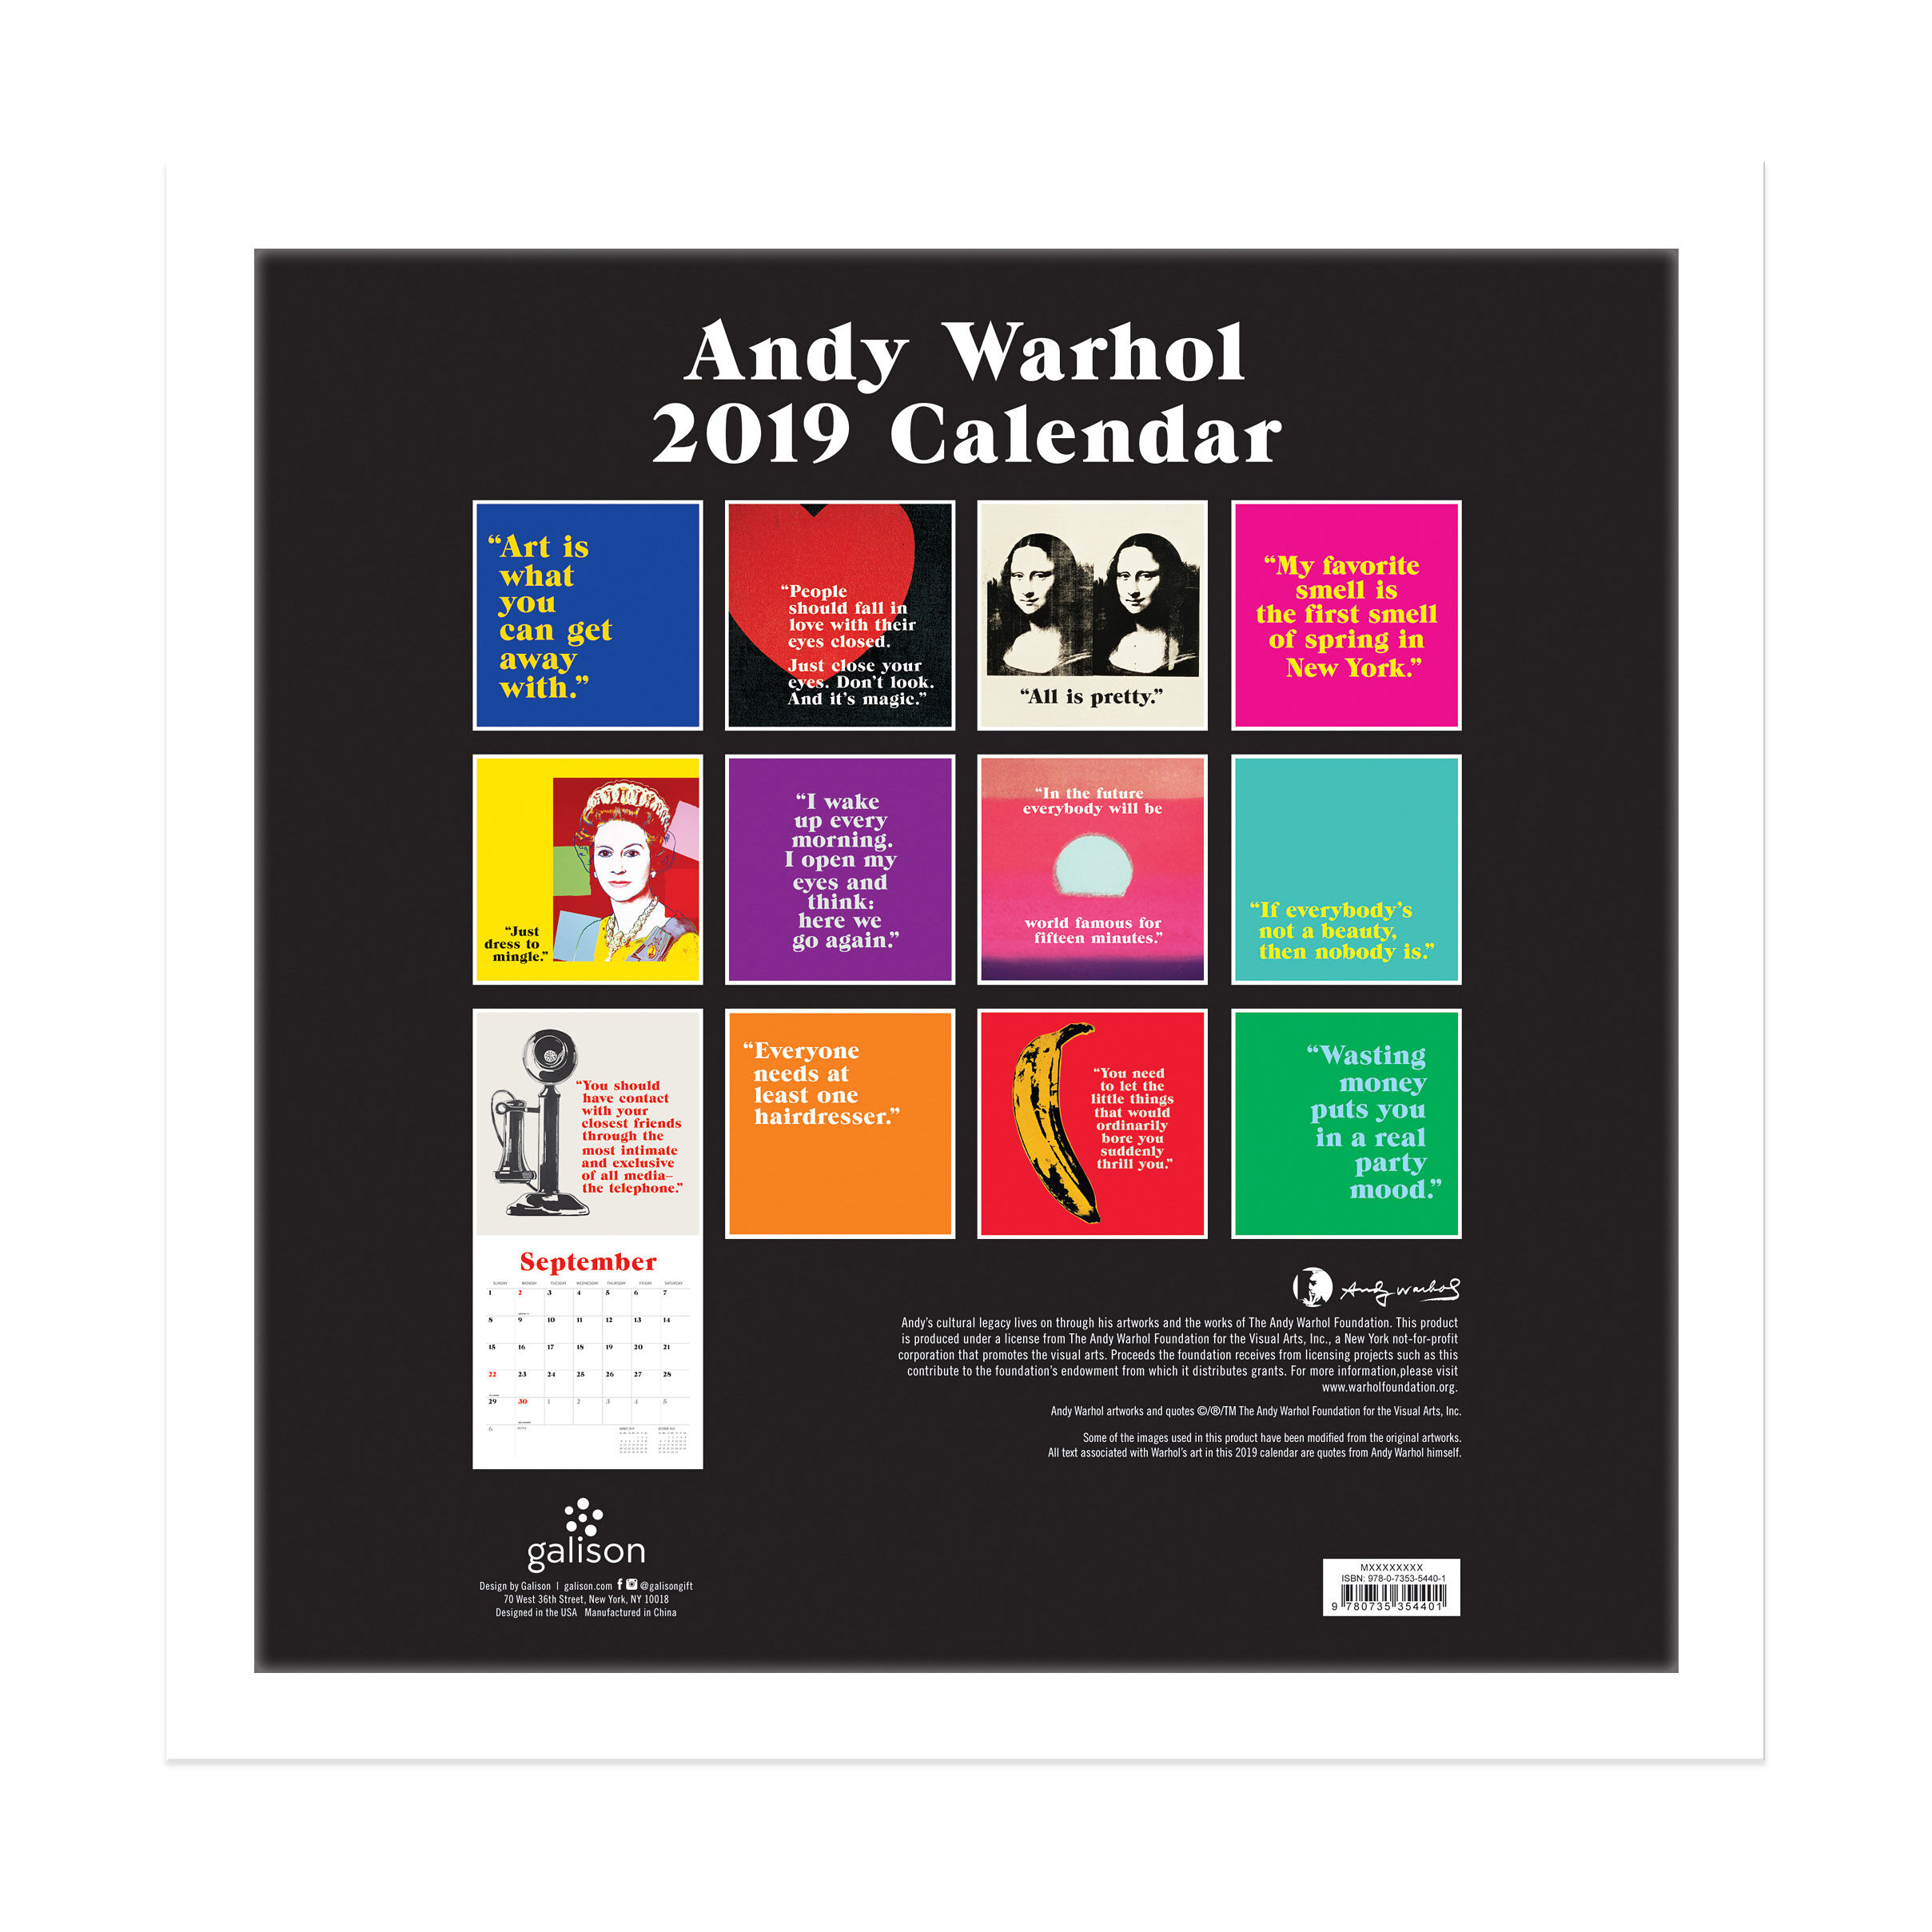 2019 Warhol Wall Calendar in color  sc 1 st  MoMA Design Store & 2019 Warhol Wall Calendar | MoMA Design Store